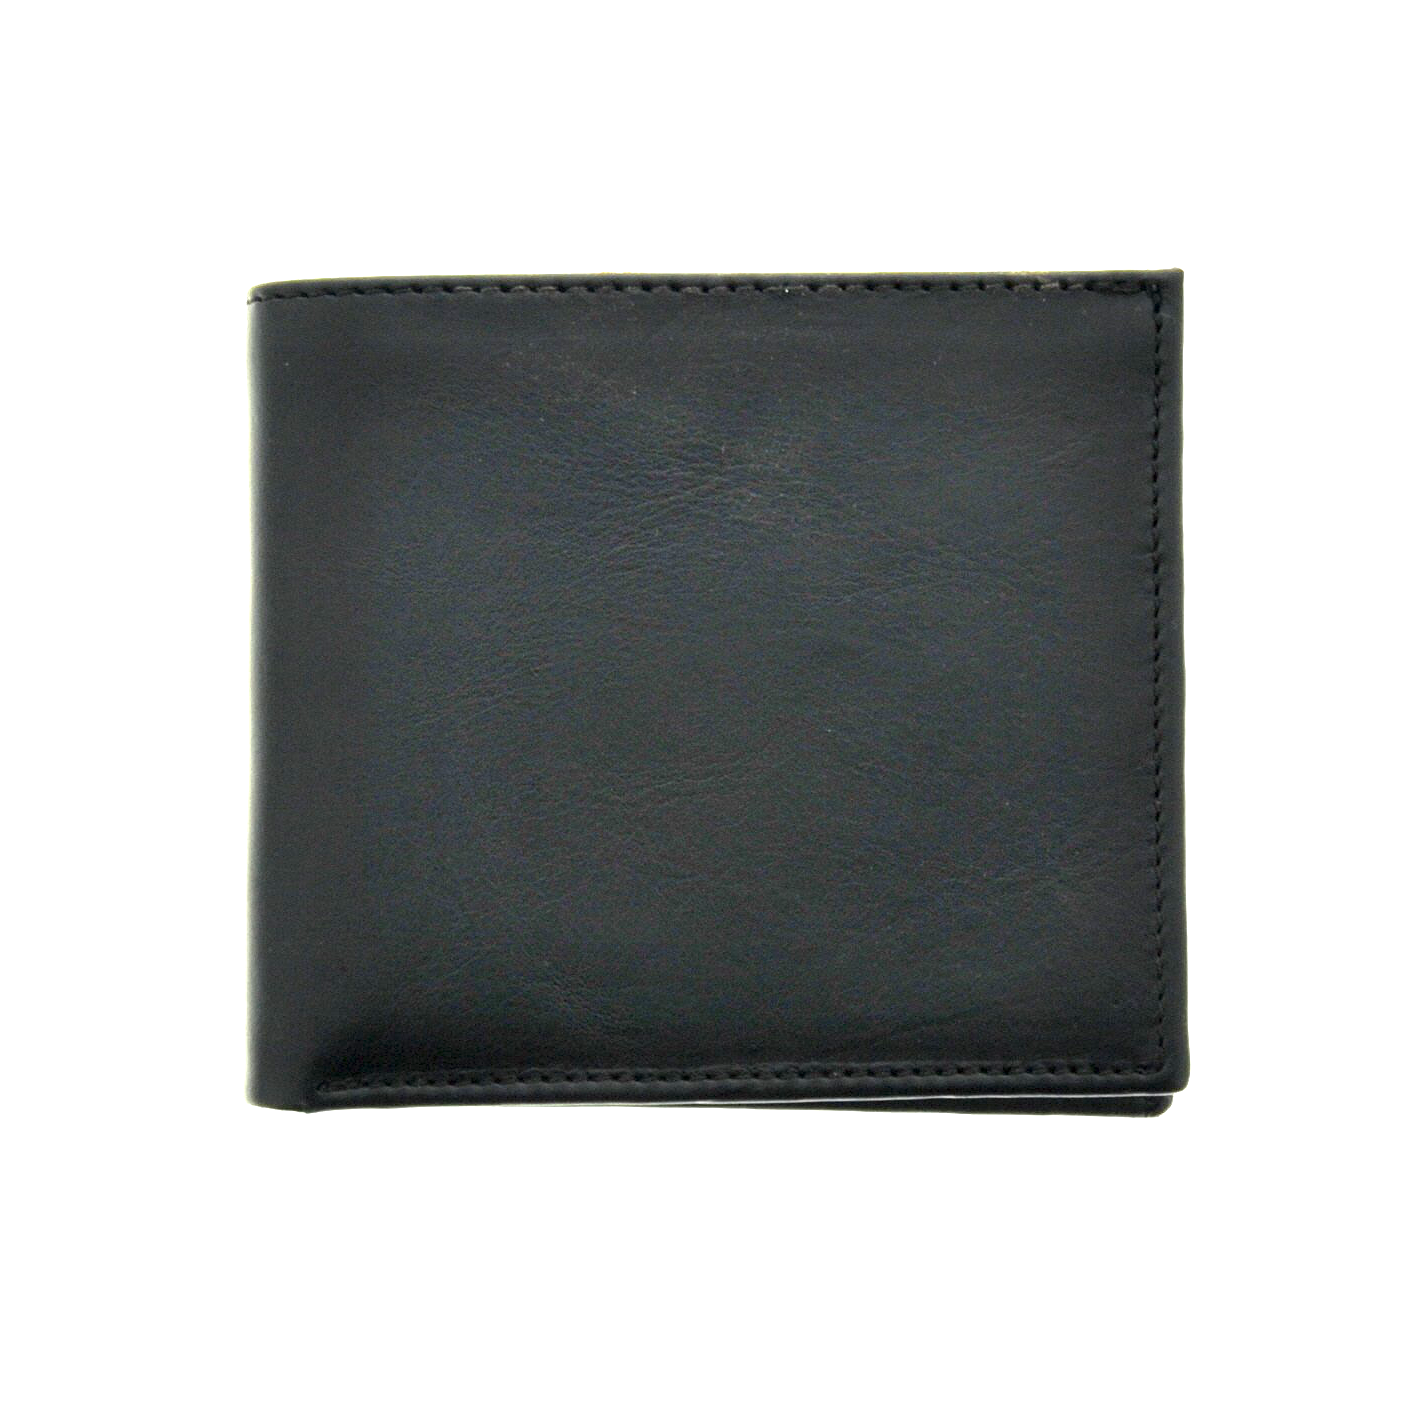 Leather Bifold Wallet - Black - LeatherLately